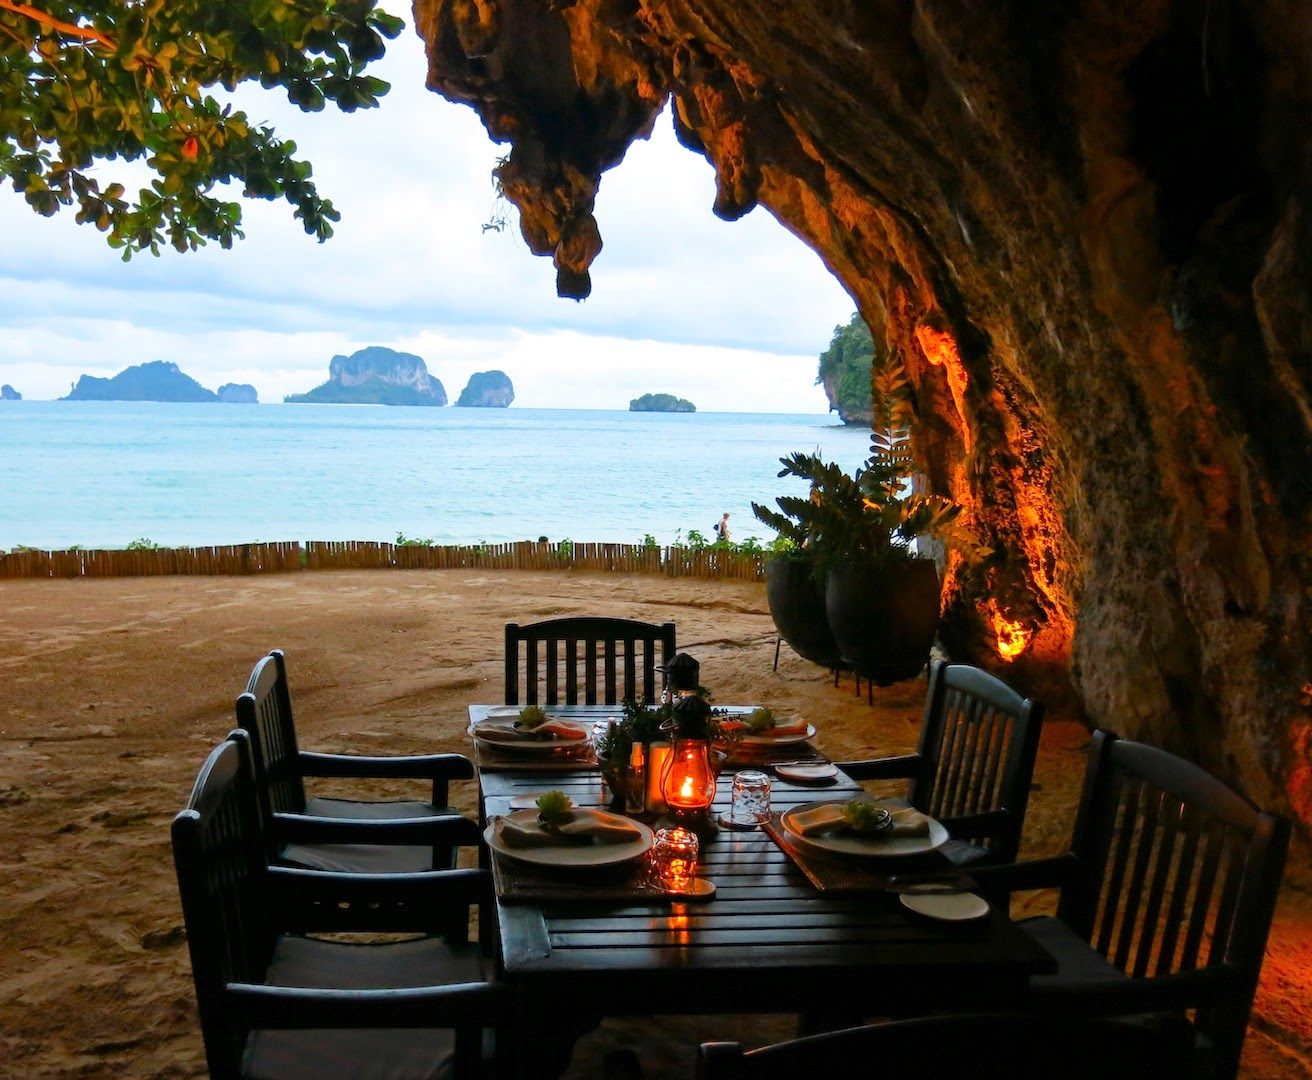 how to get to the grotto krabi